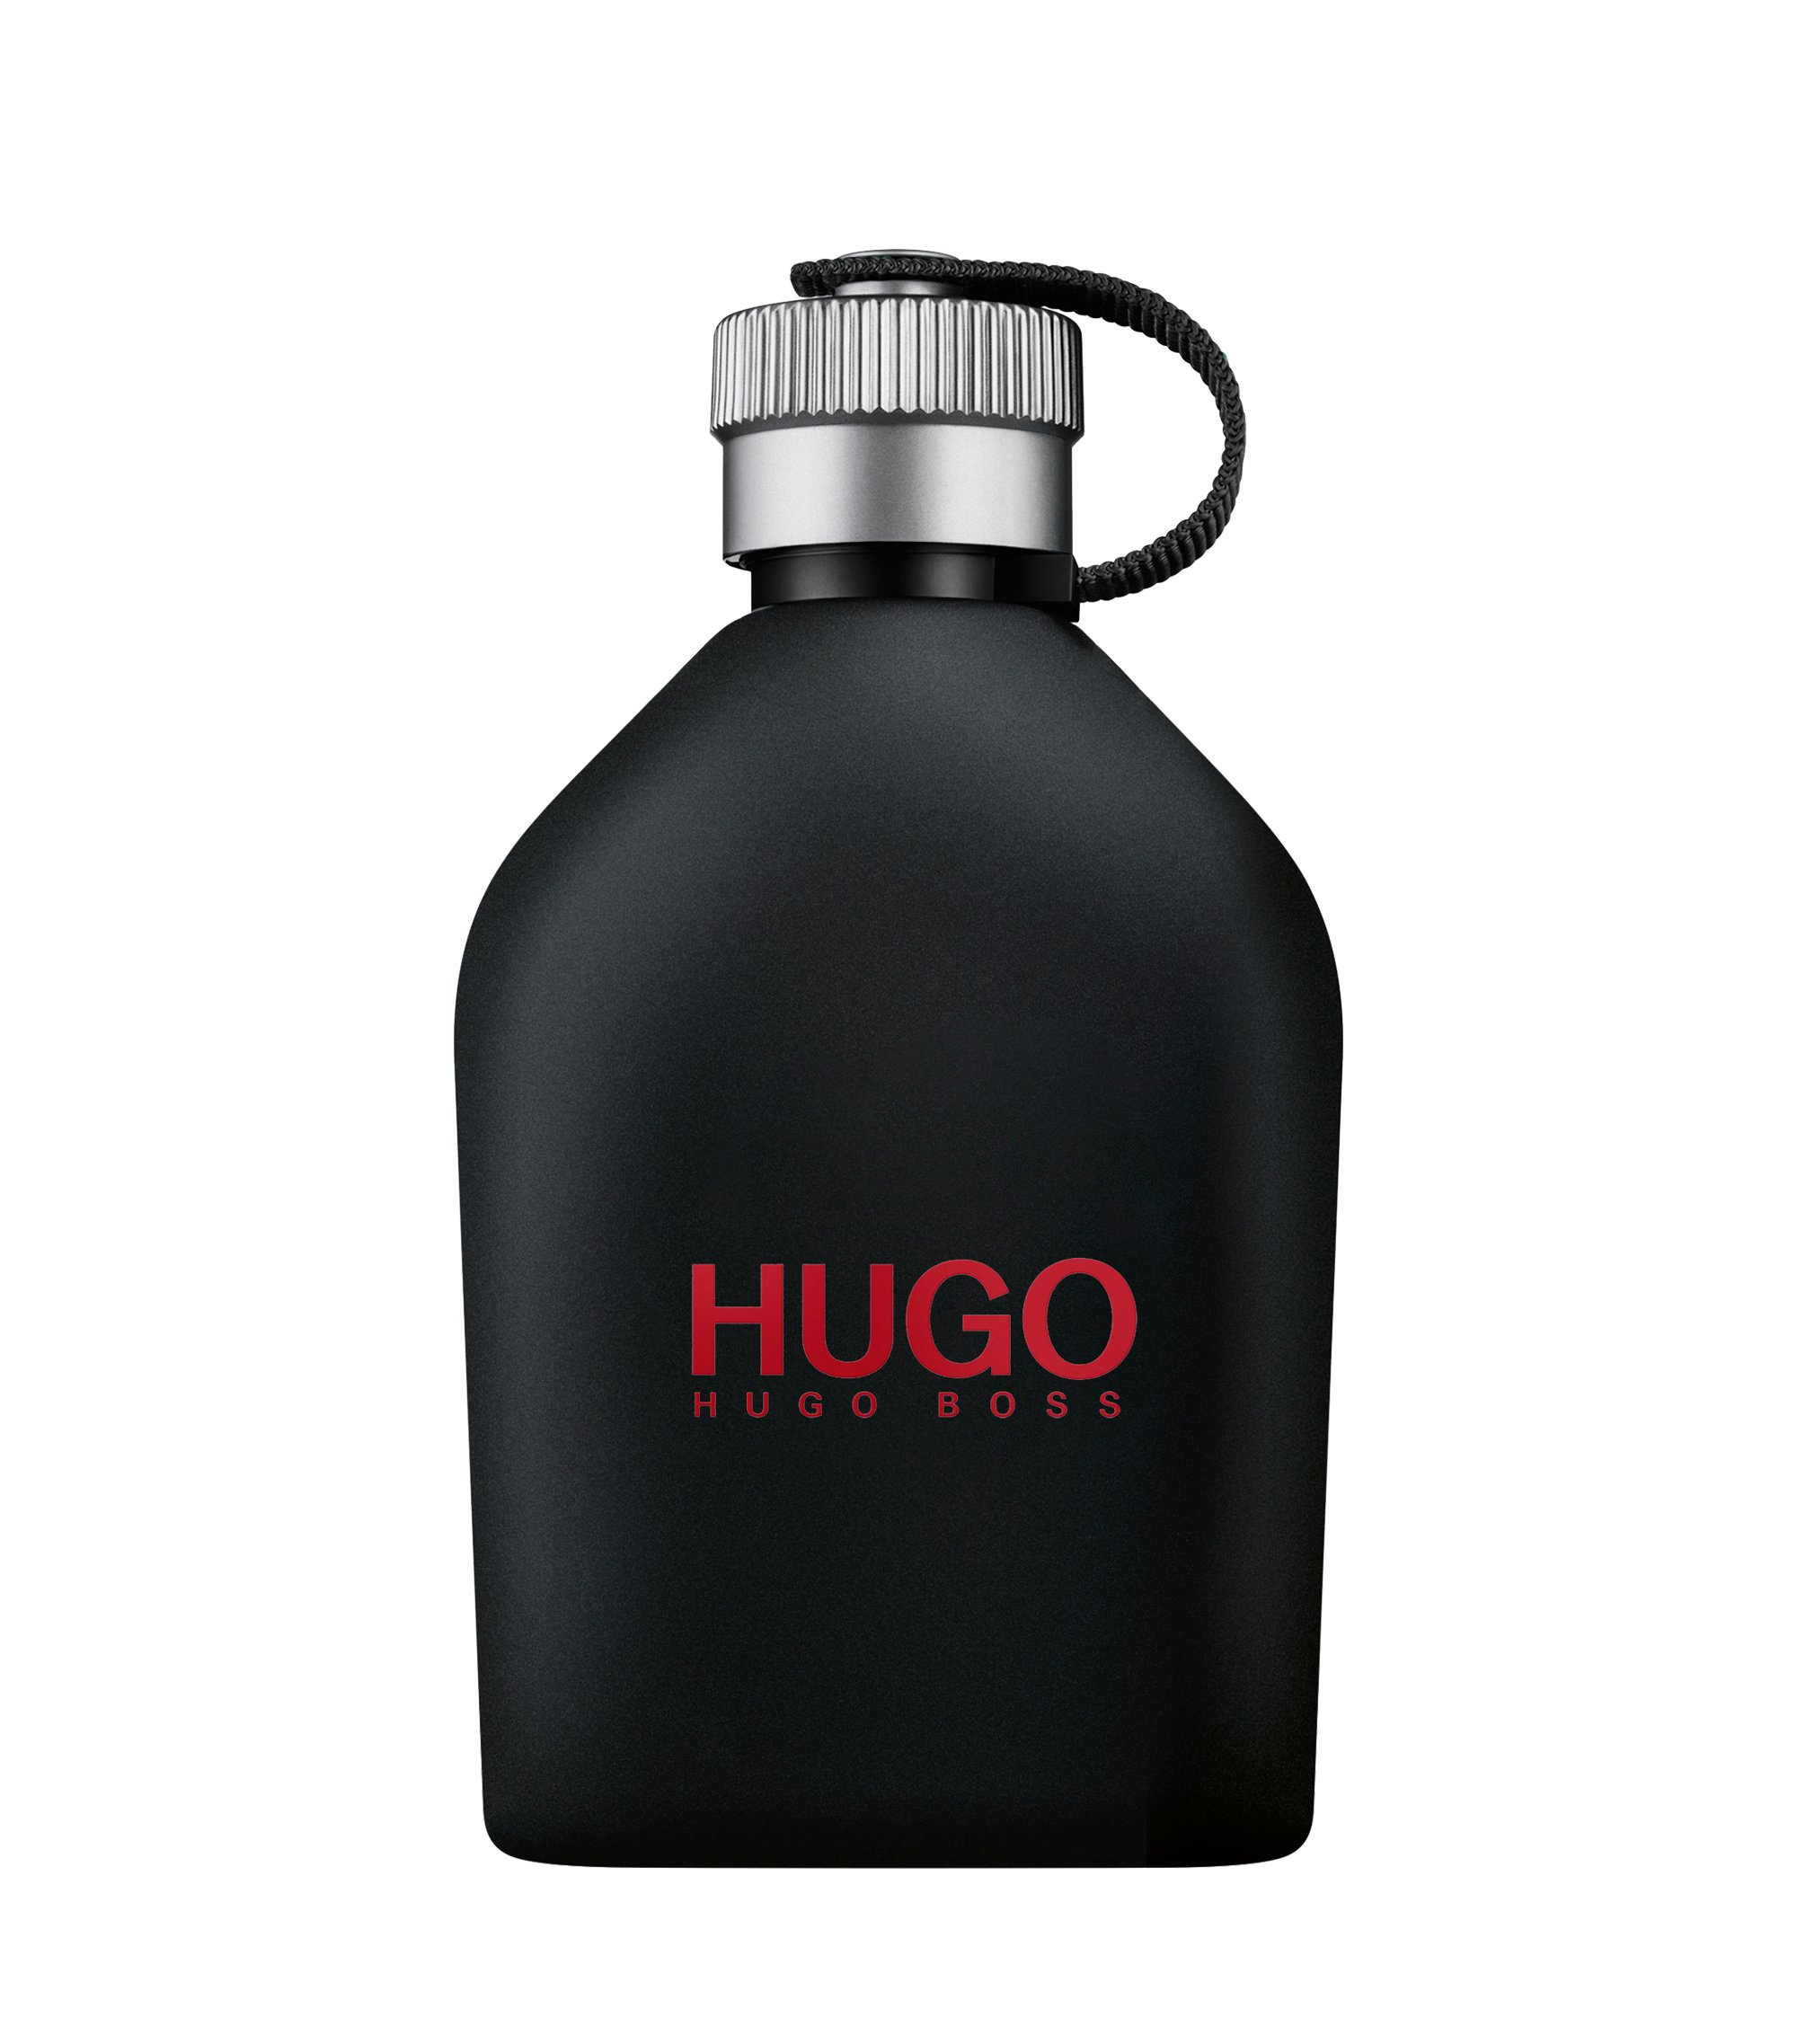 Eau de toilette HUGO Just Different de 200 ml, Assorted-Pre-Pack